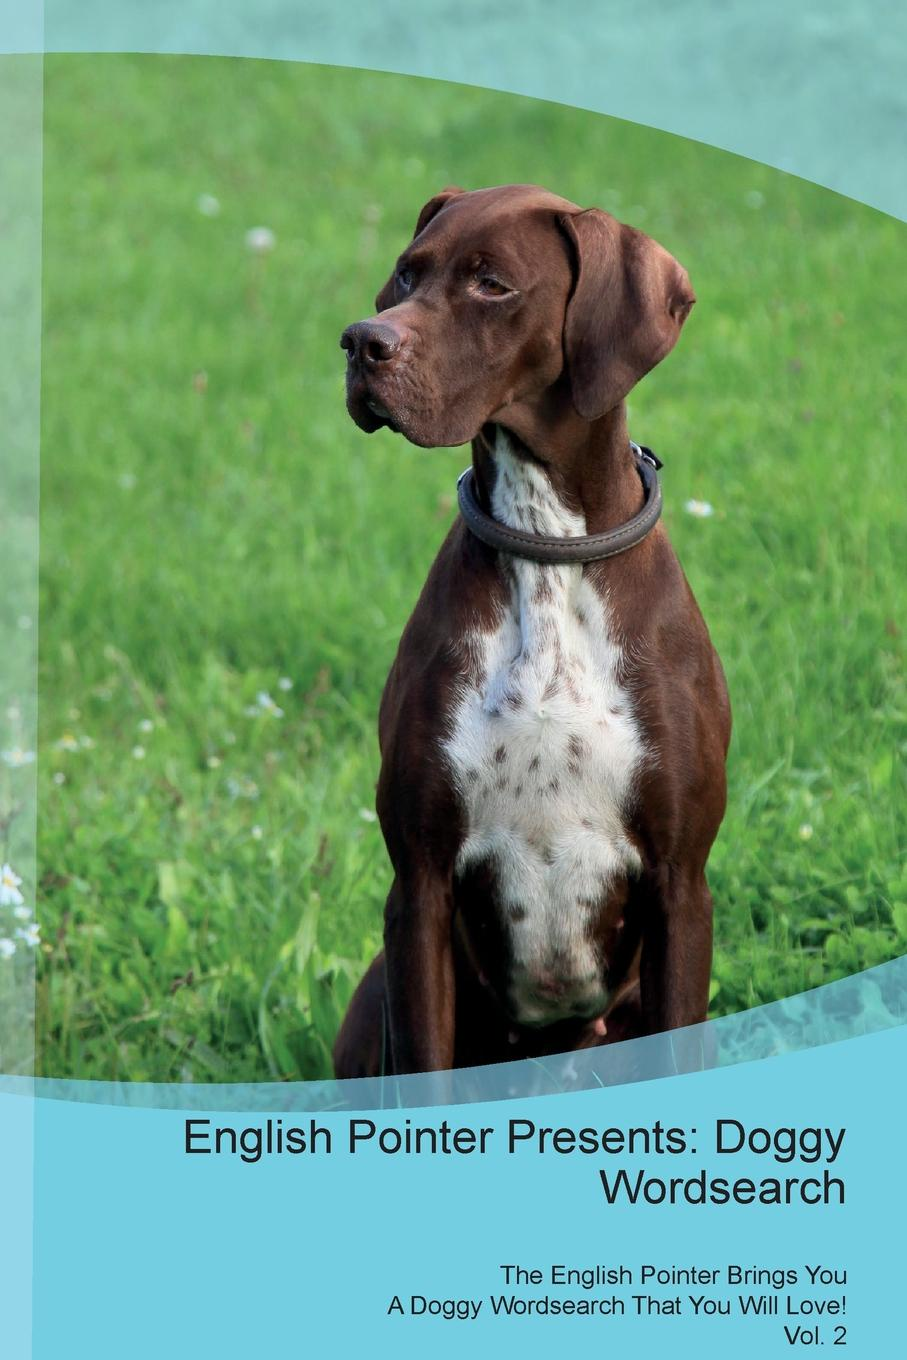 Doggy Puzzles English Pointer Presents. Wordsearch The Brings You A That Will Love! Vol. 2